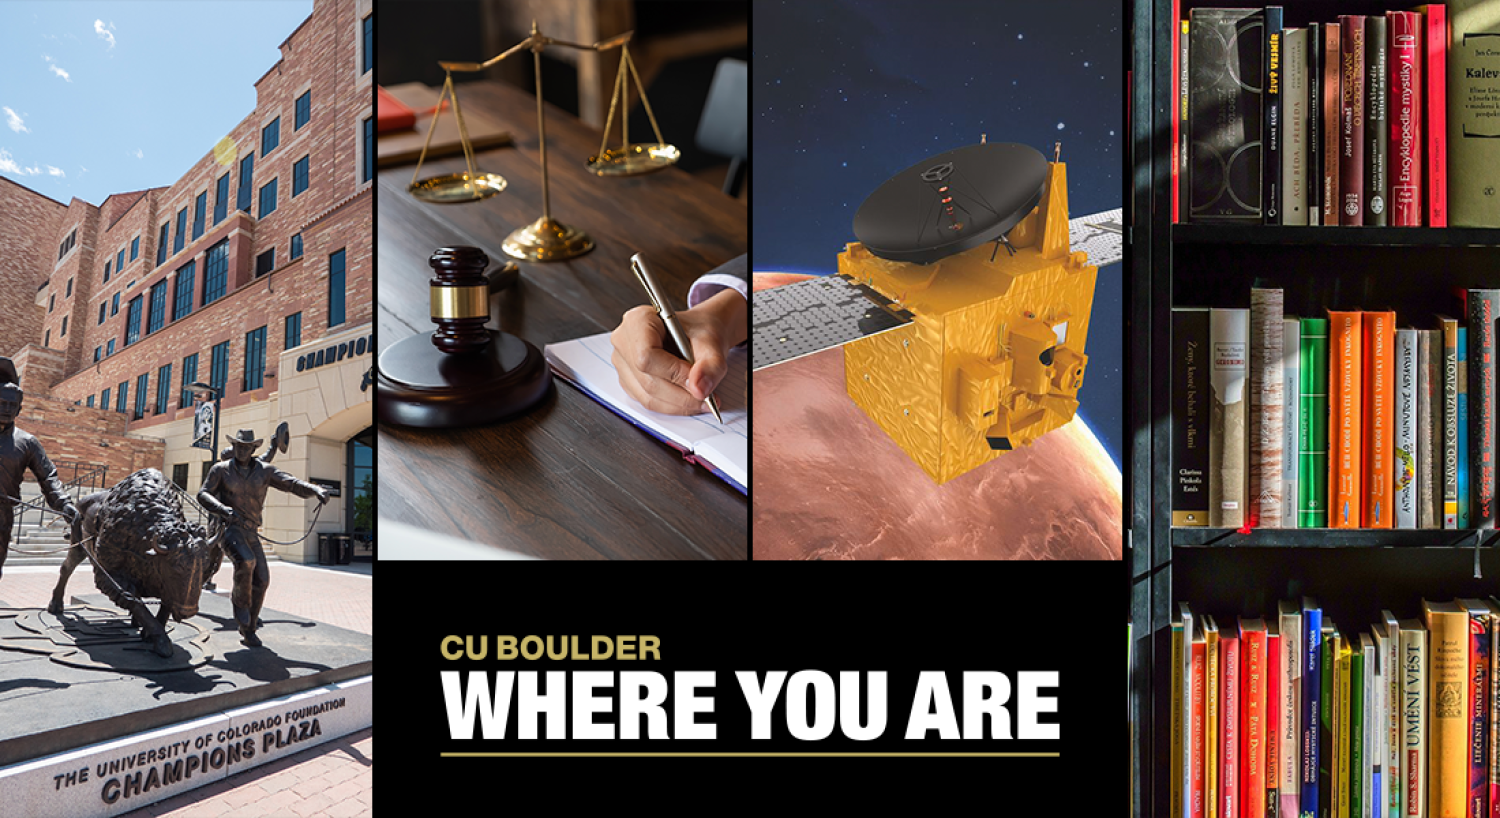 CU Boulder Where You Are banner